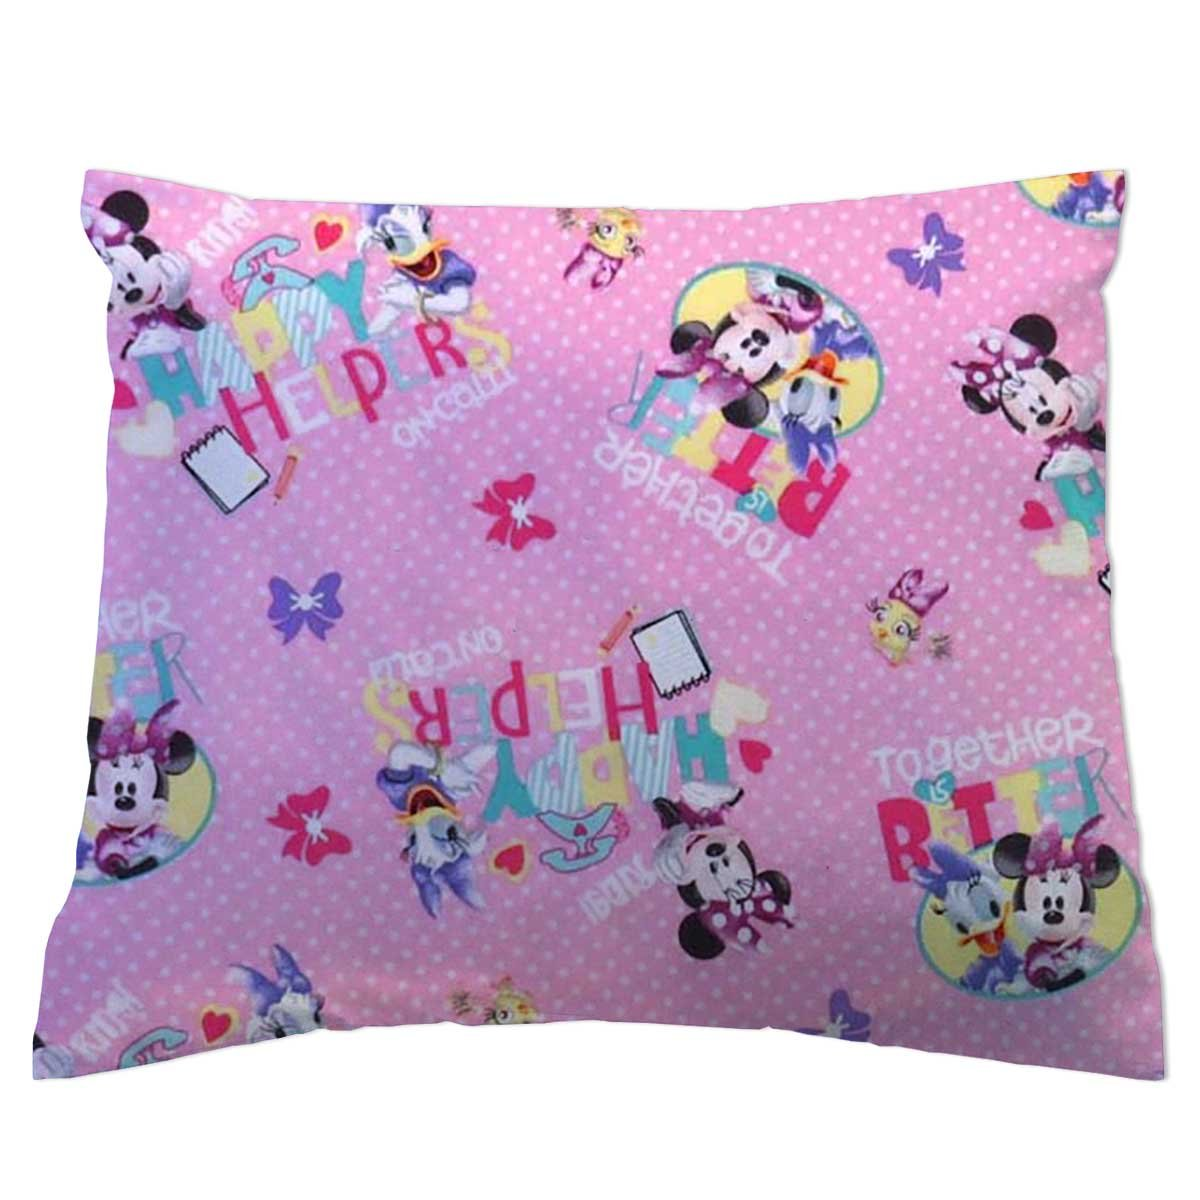 SheetWorld Crib Toddler Pillow Case, 100% Cotton Woven, Minnie & Daffy, 13 x 17, Made in USA by SHEETWORLD.COM